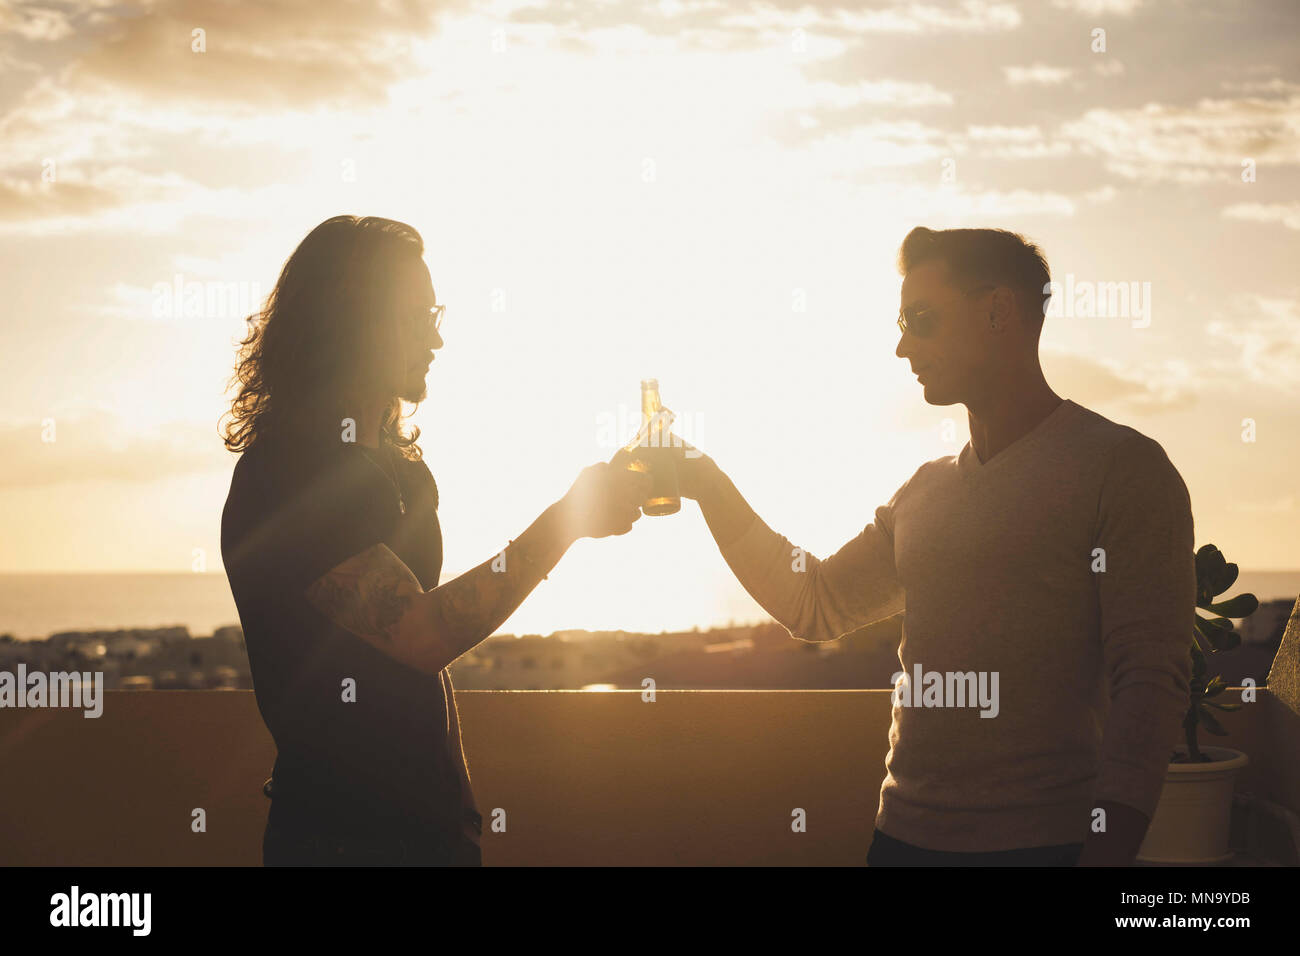 beatiful sunset light and silhouete for two man drinking together on the rooftop terrace with ocean view and buildings. drinking beer to celebrate a s - Stock Image